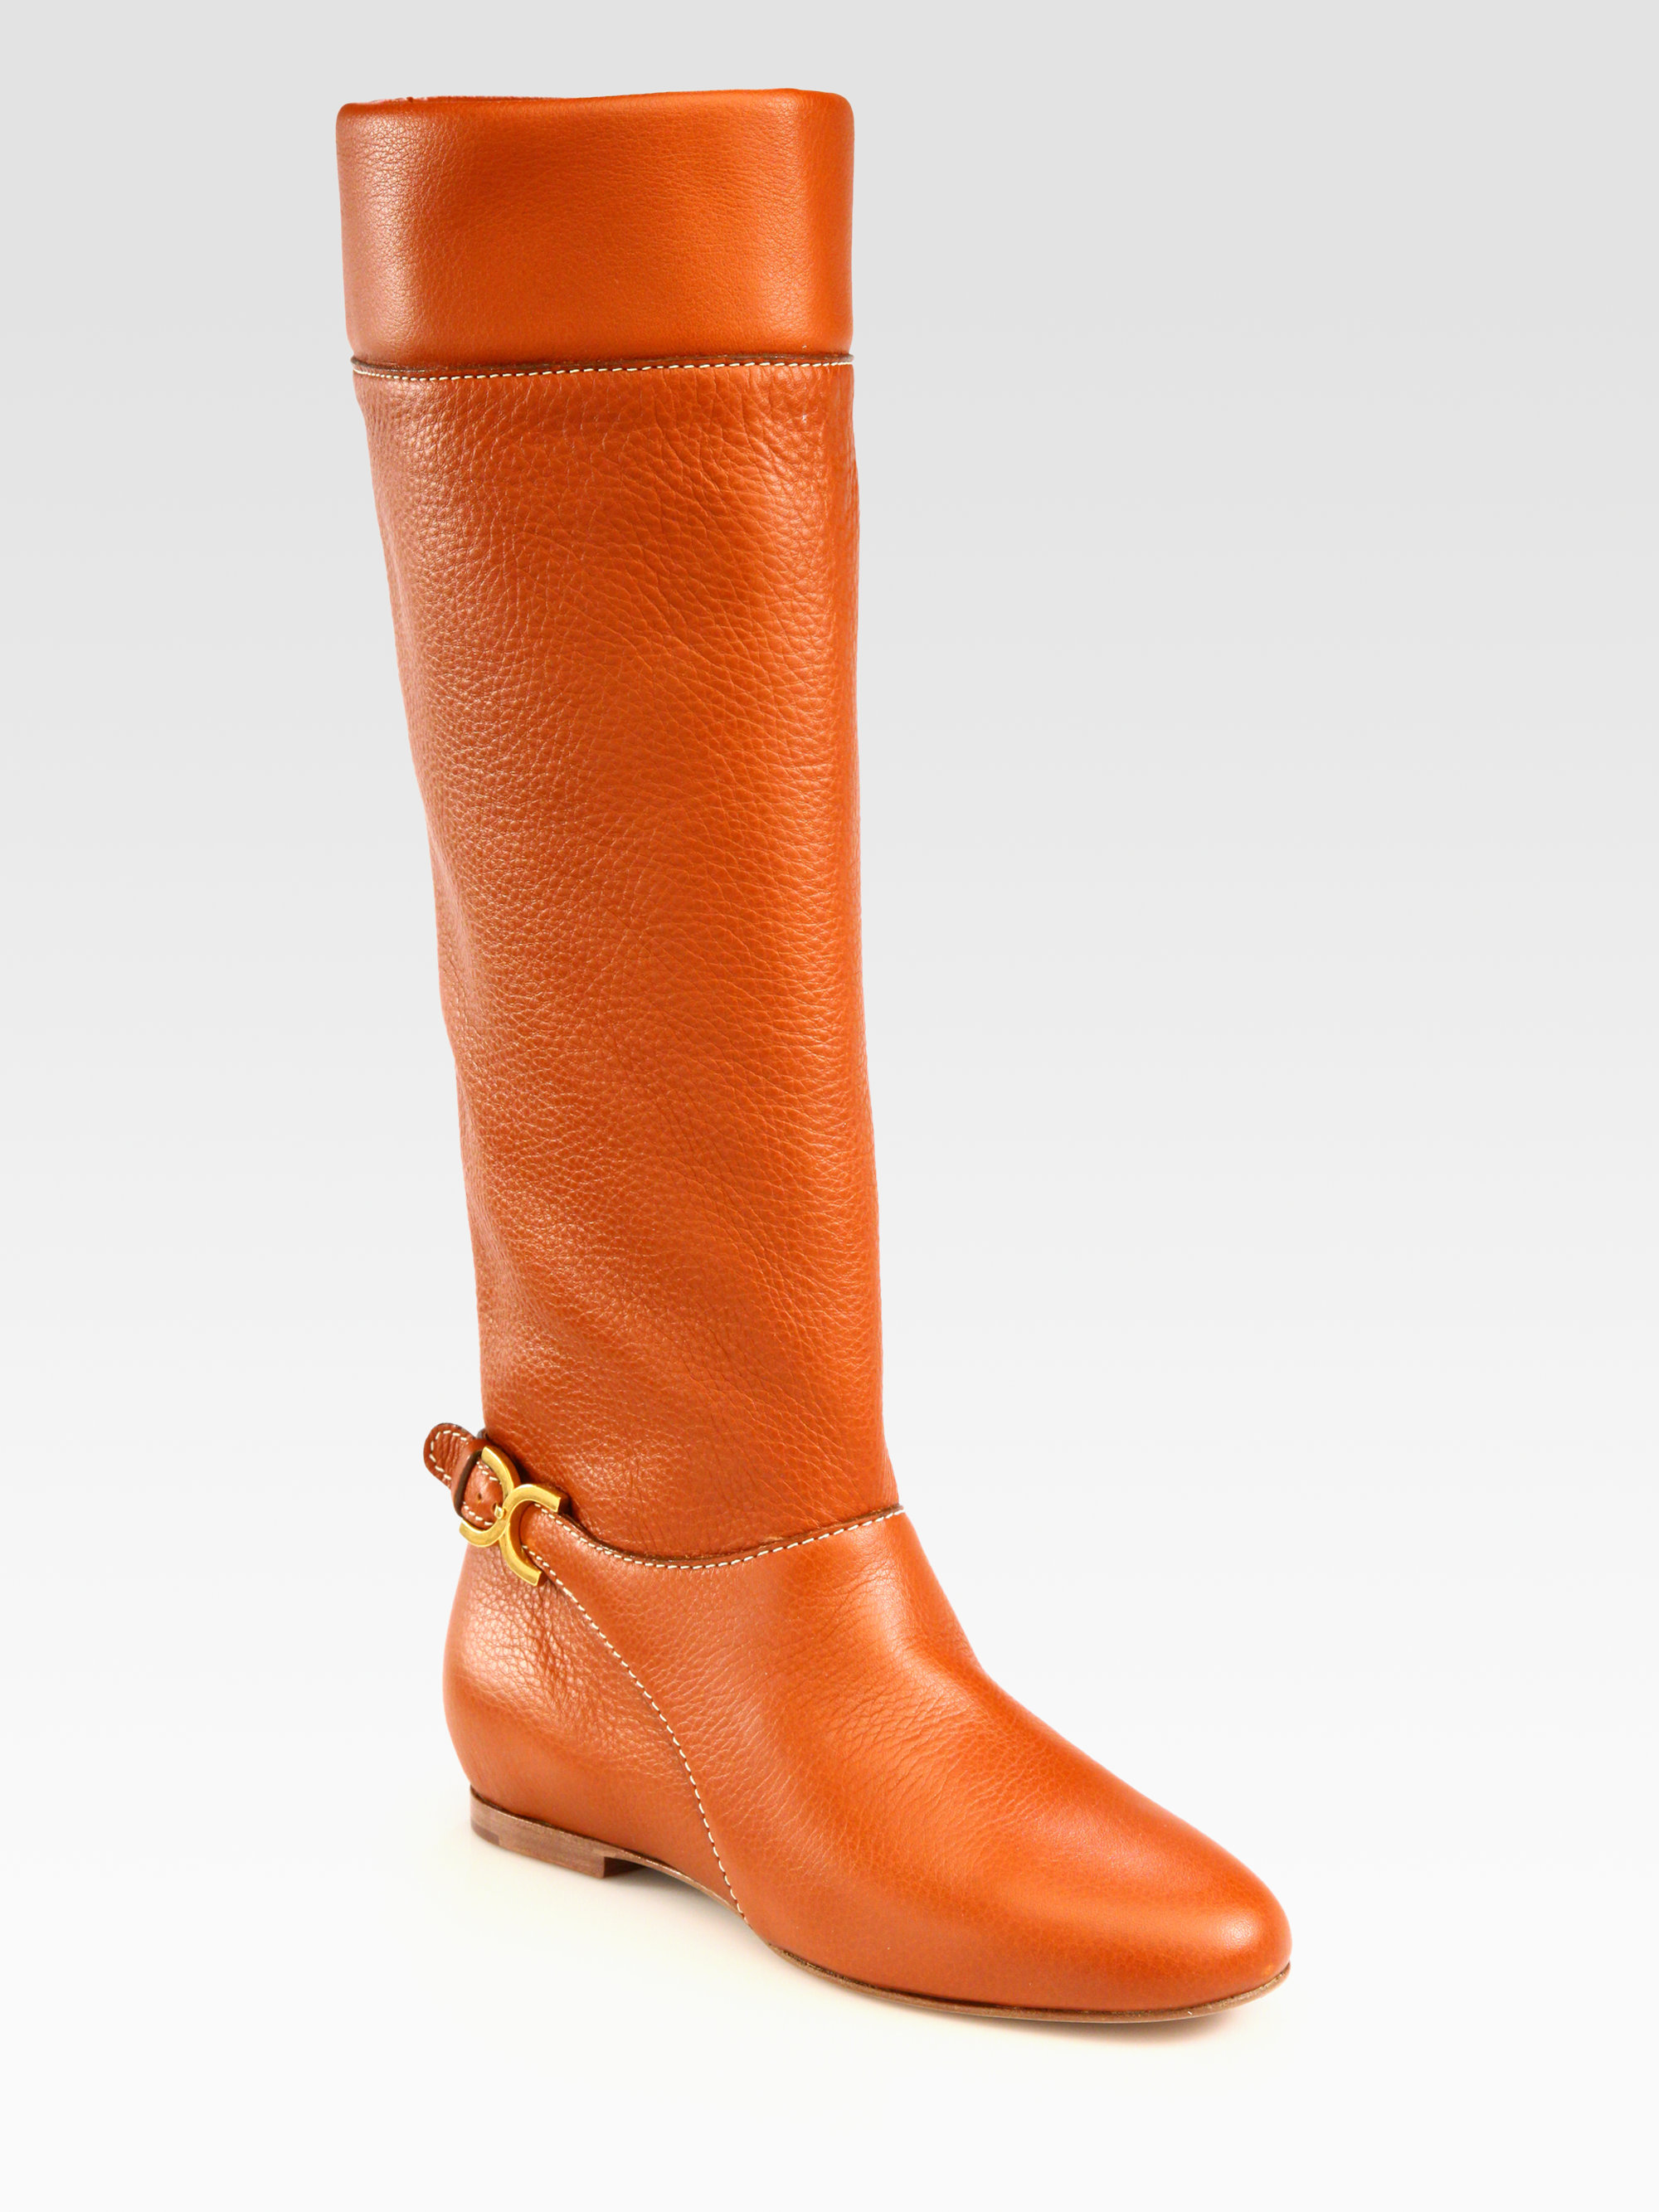 Chloé Flat Knee High Leather Boots in Brown | Lyst